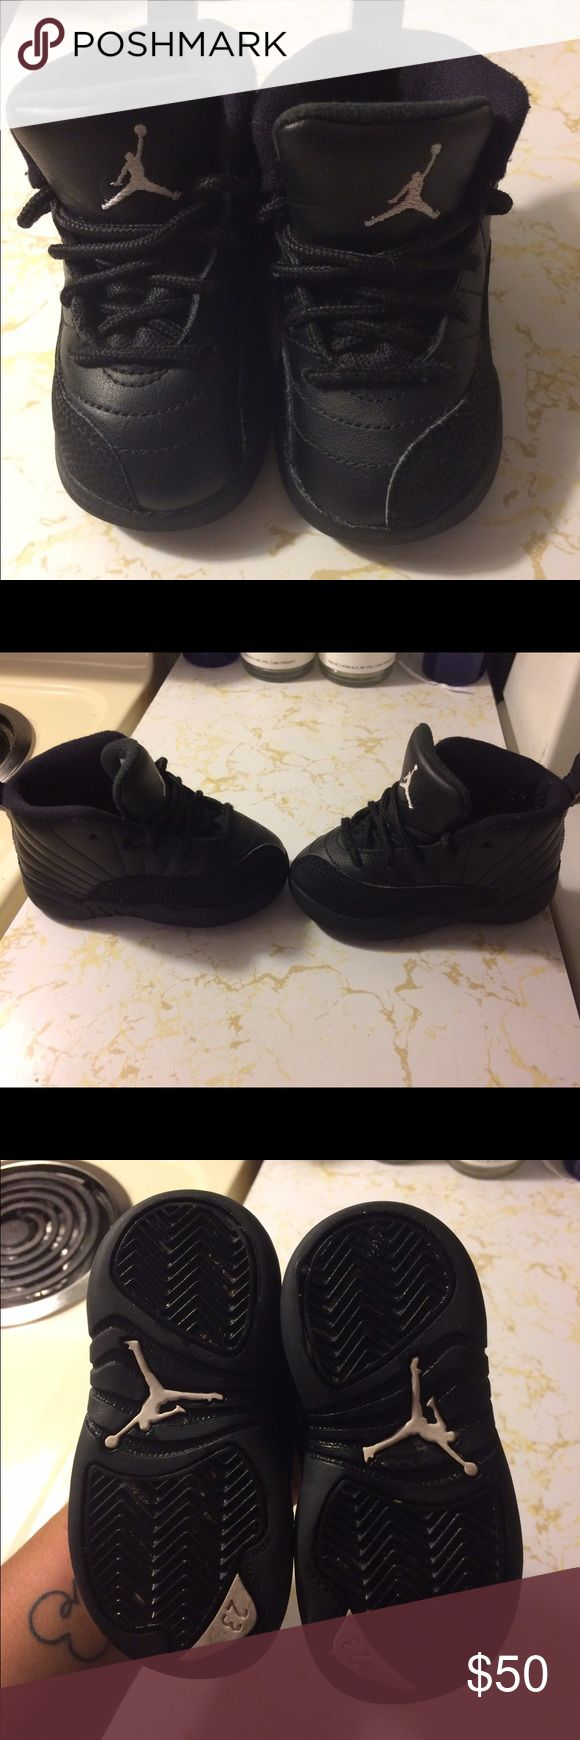 1000 Ideas About Toddler Jordan Shoes On Pinterest Baby